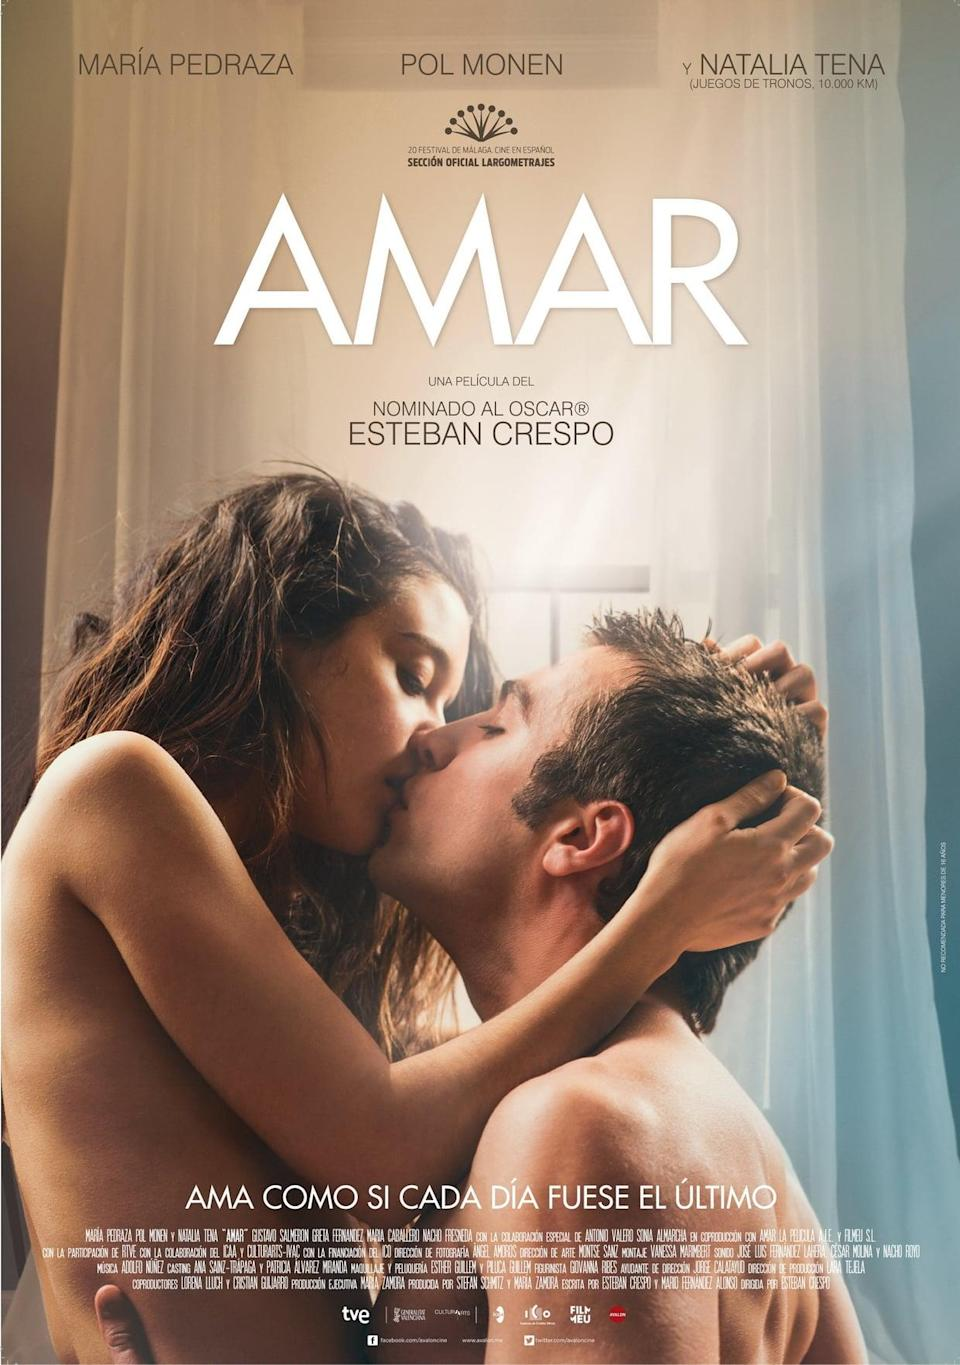 """<p>In this Spanish film, two young people discover the intensity of first love while also struggling to face the world of adulthood.</p> <p>Watch <a href=""""https://www.netflix.com/title/80113589"""" class=""""link rapid-noclick-resp"""" rel=""""nofollow noopener"""" target=""""_blank"""" data-ylk=""""slk:Amar""""><strong>Amar</strong></a> on Netflix now.</p>"""